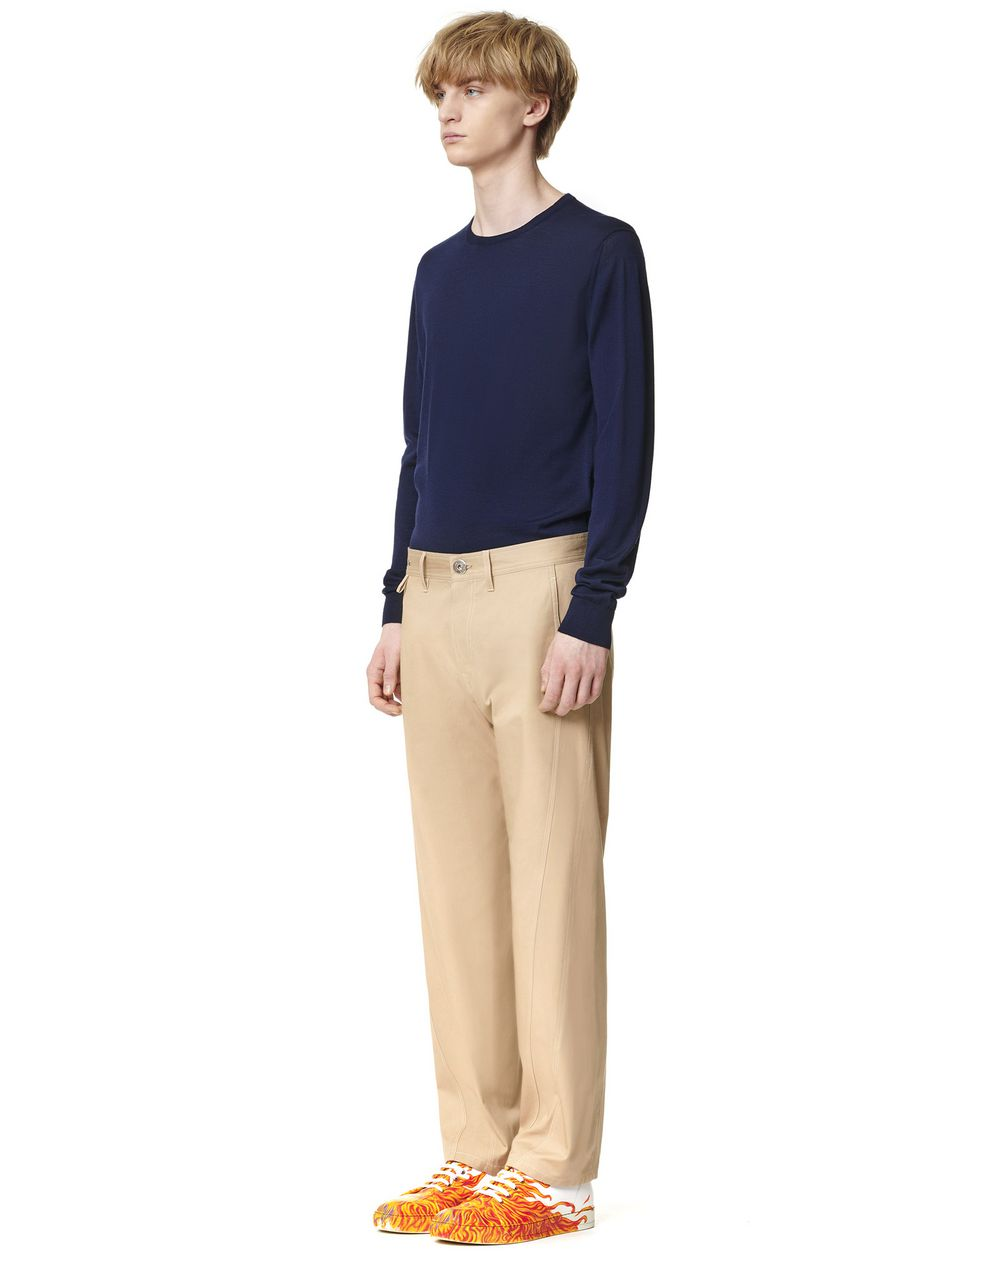 TWISTED LEG TROUSERS - Lanvin